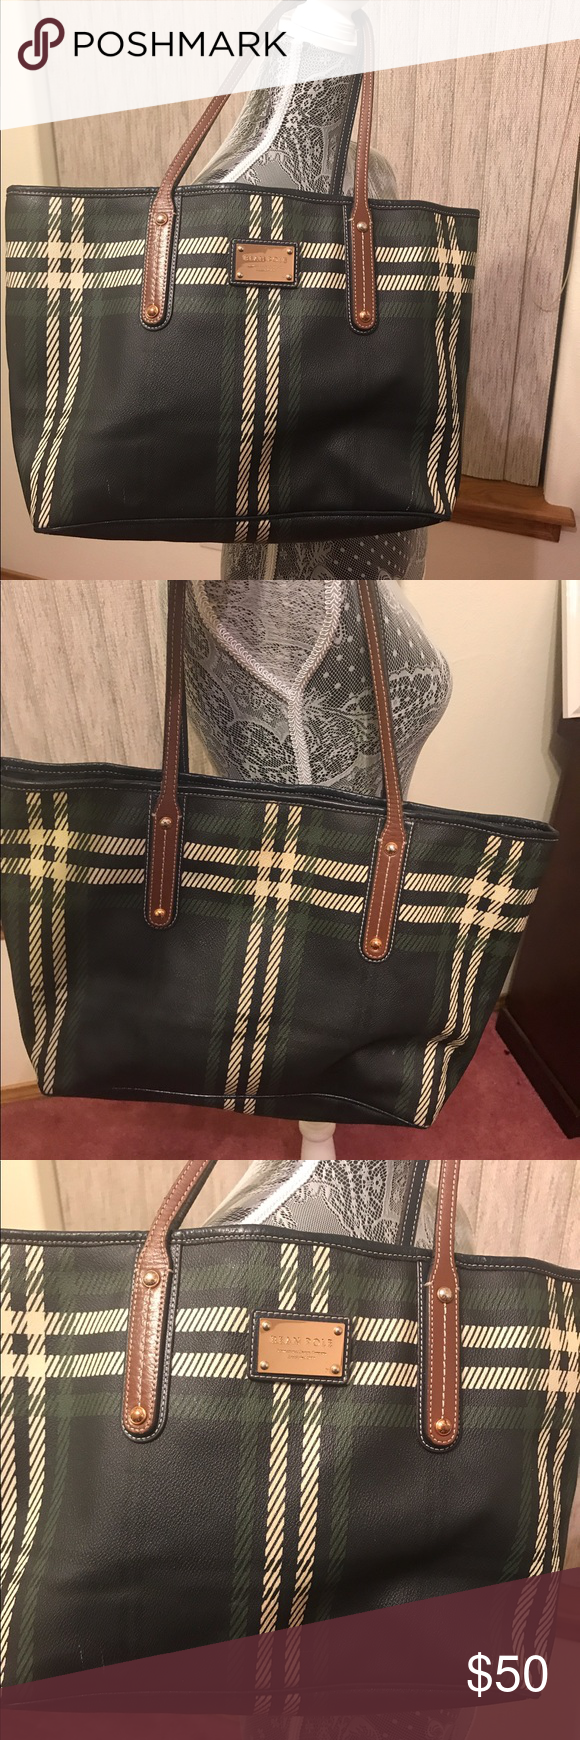 Bean Pole Bag Classic Handbag Very Ious And Large To Hold A Lot